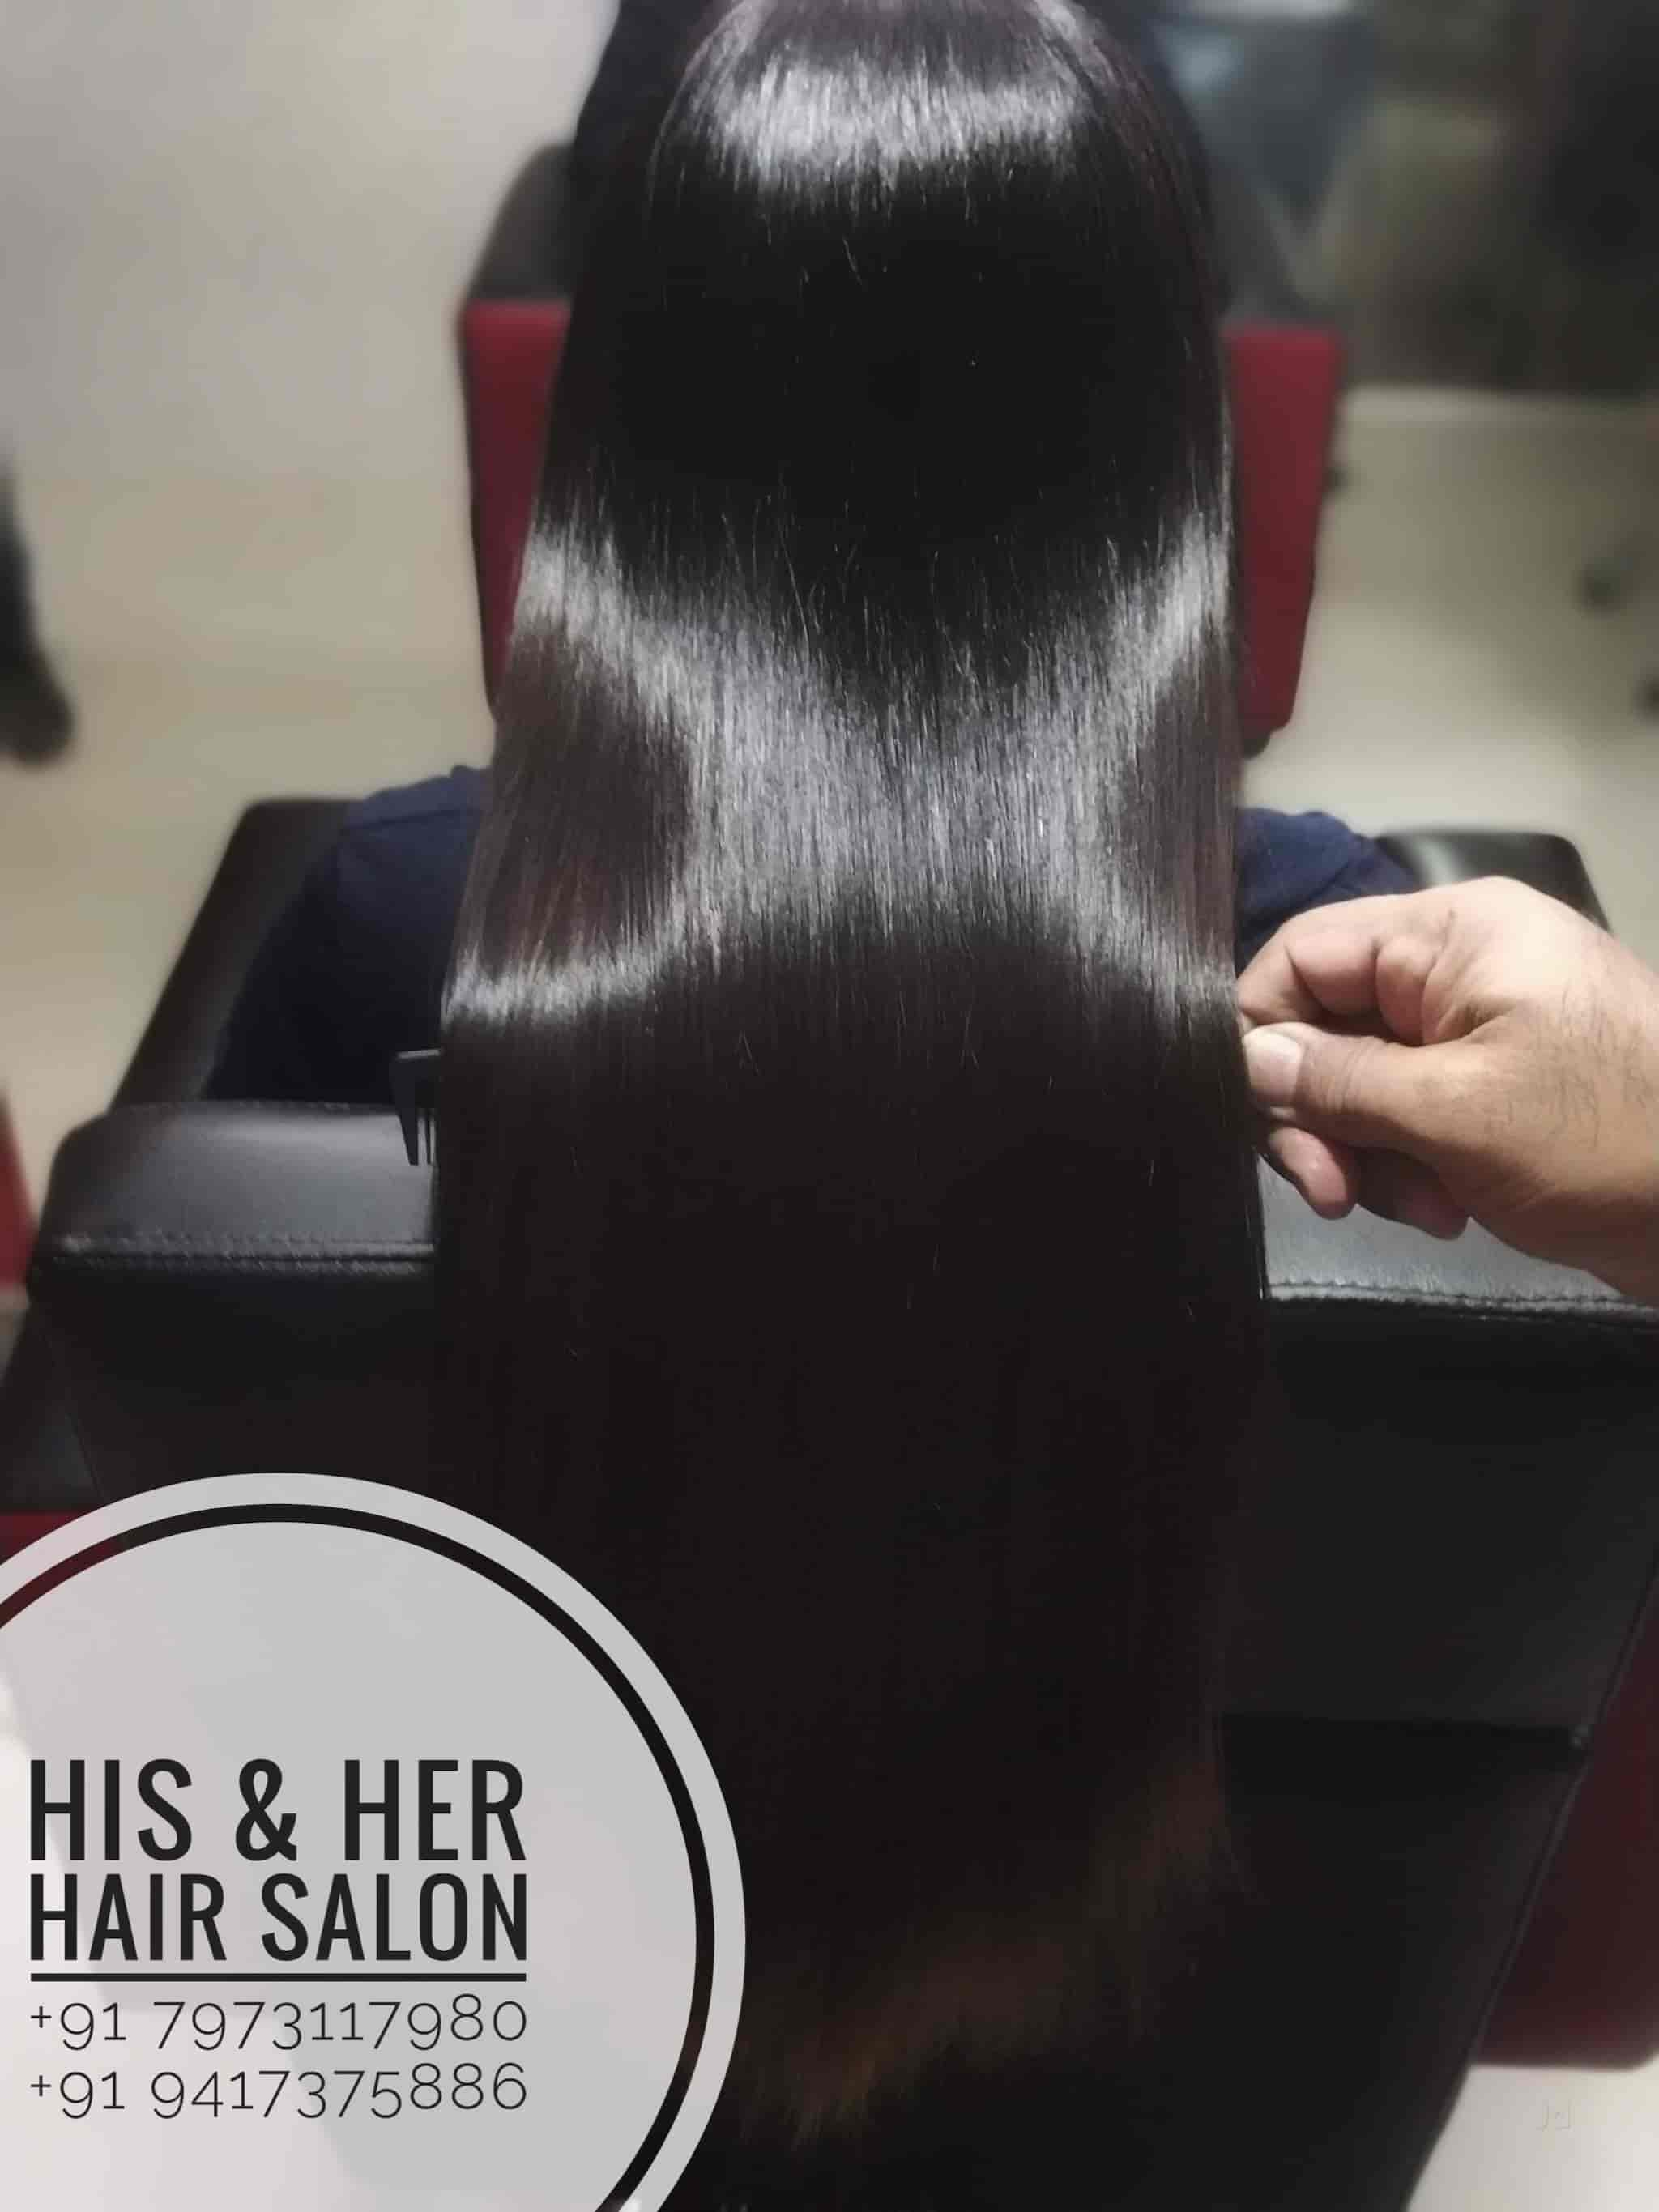 His And Her Unisex Hair Salon Dugri Phase 2 Beauty Spas In Ludhiana Justdial